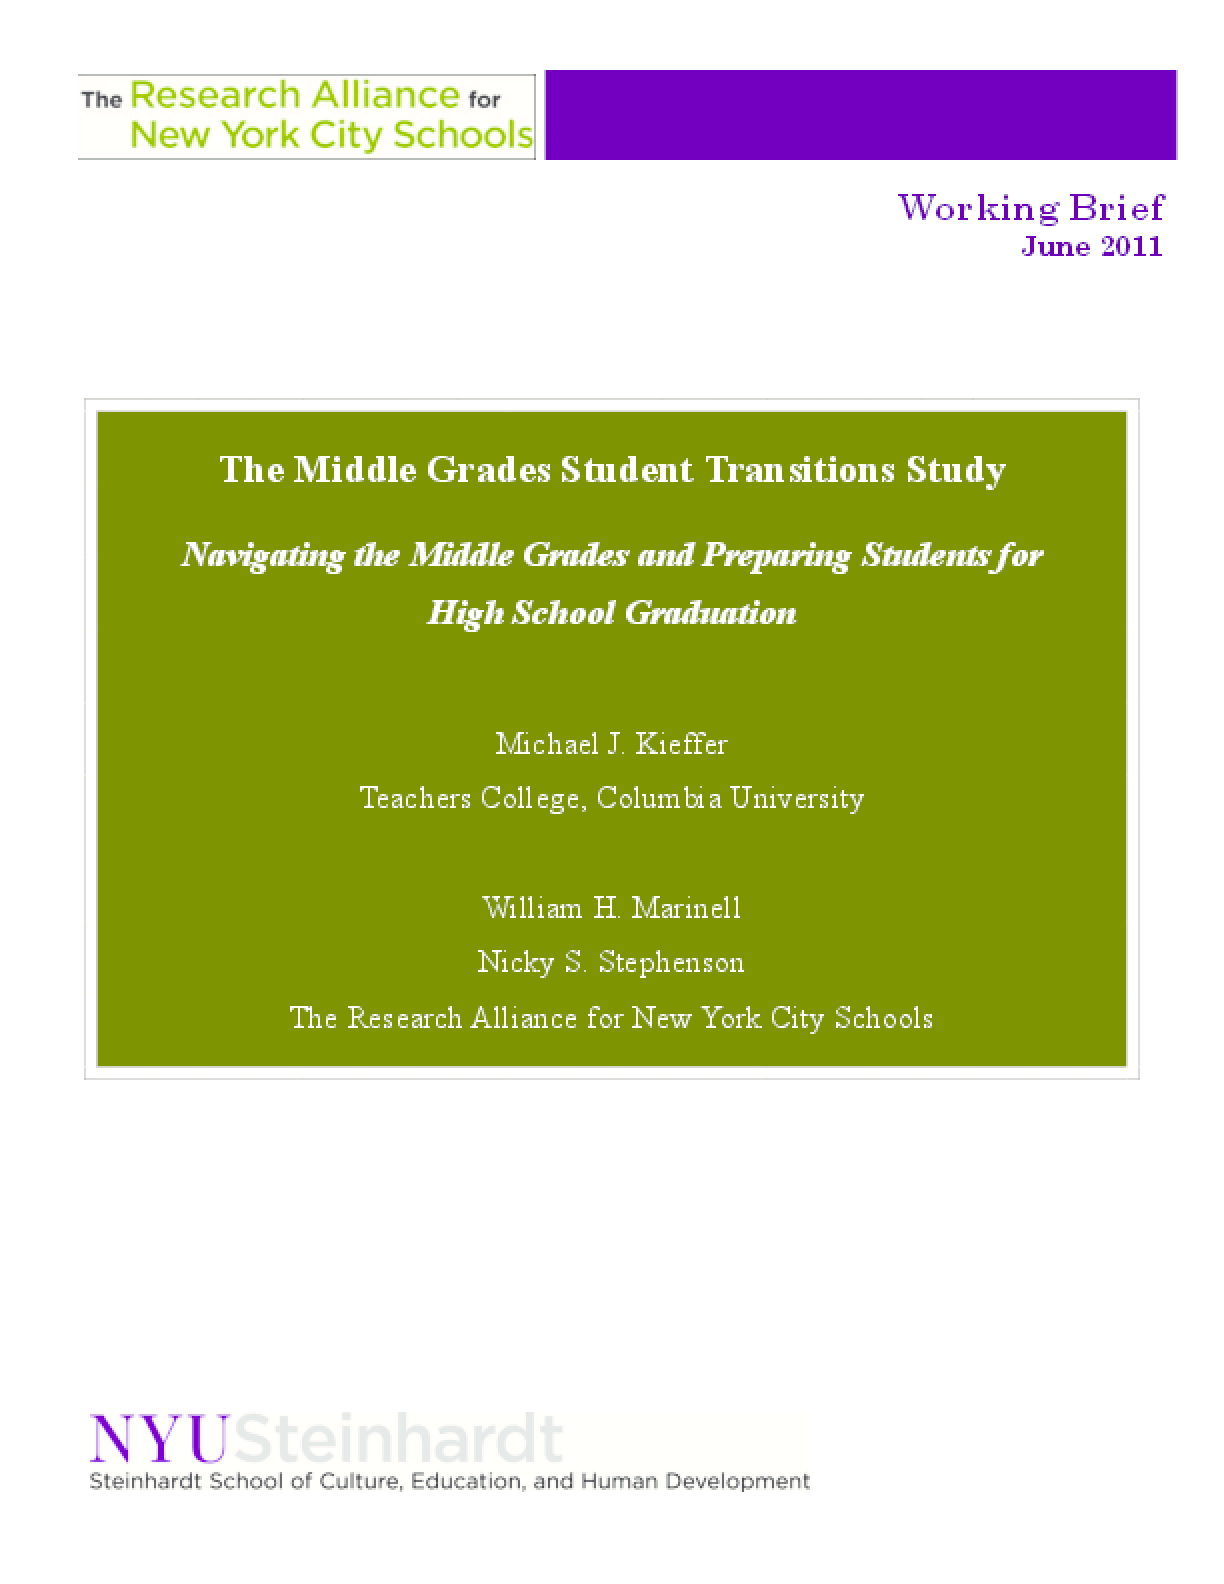 Navigating the Middle Grades and Preparing Students for High School Graduation